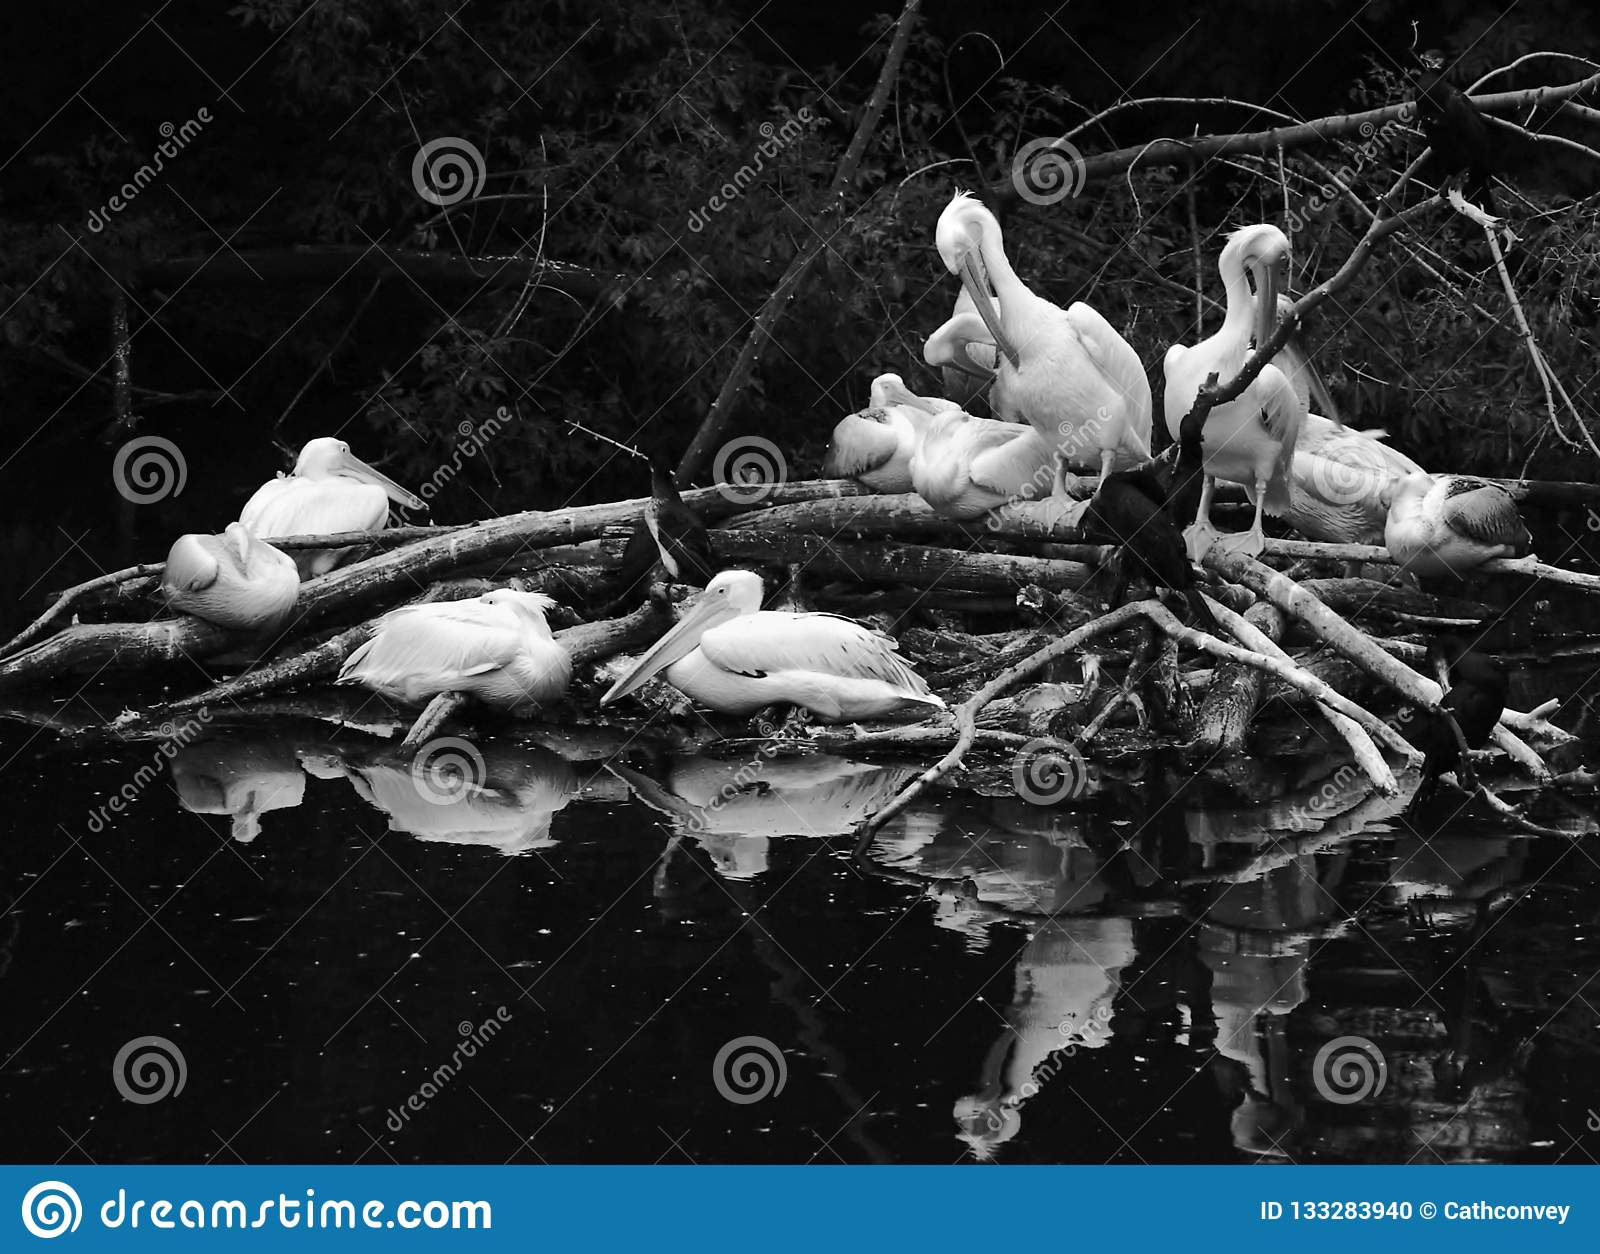 White pelicans by water. Black and white photo.